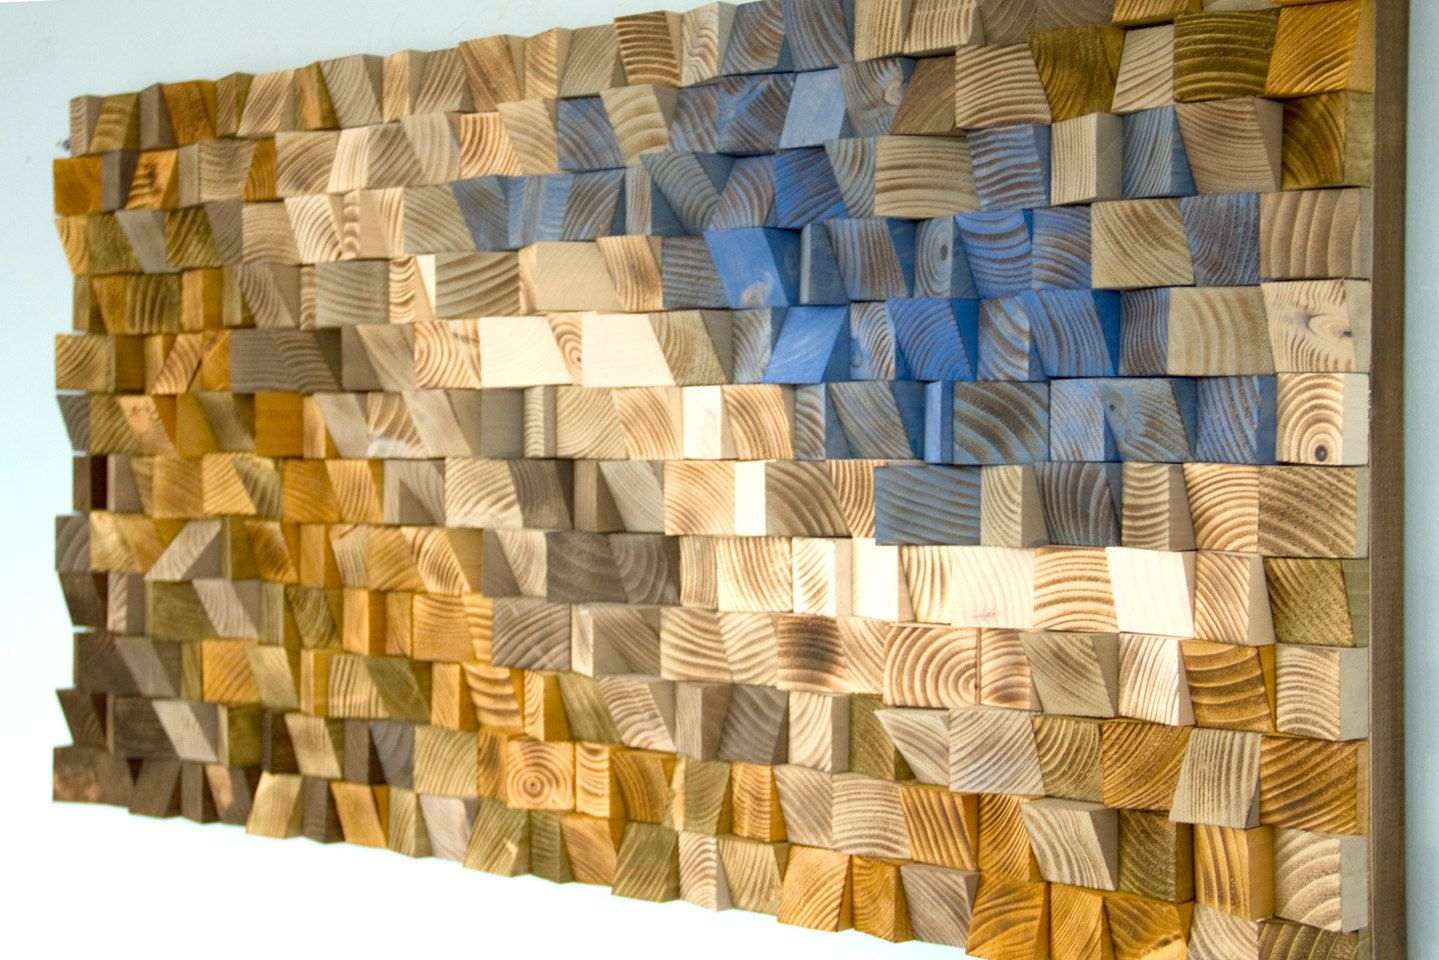 Fantastic Wooden Wall Art Sculptures Pictures Inspiration - The Wall ...